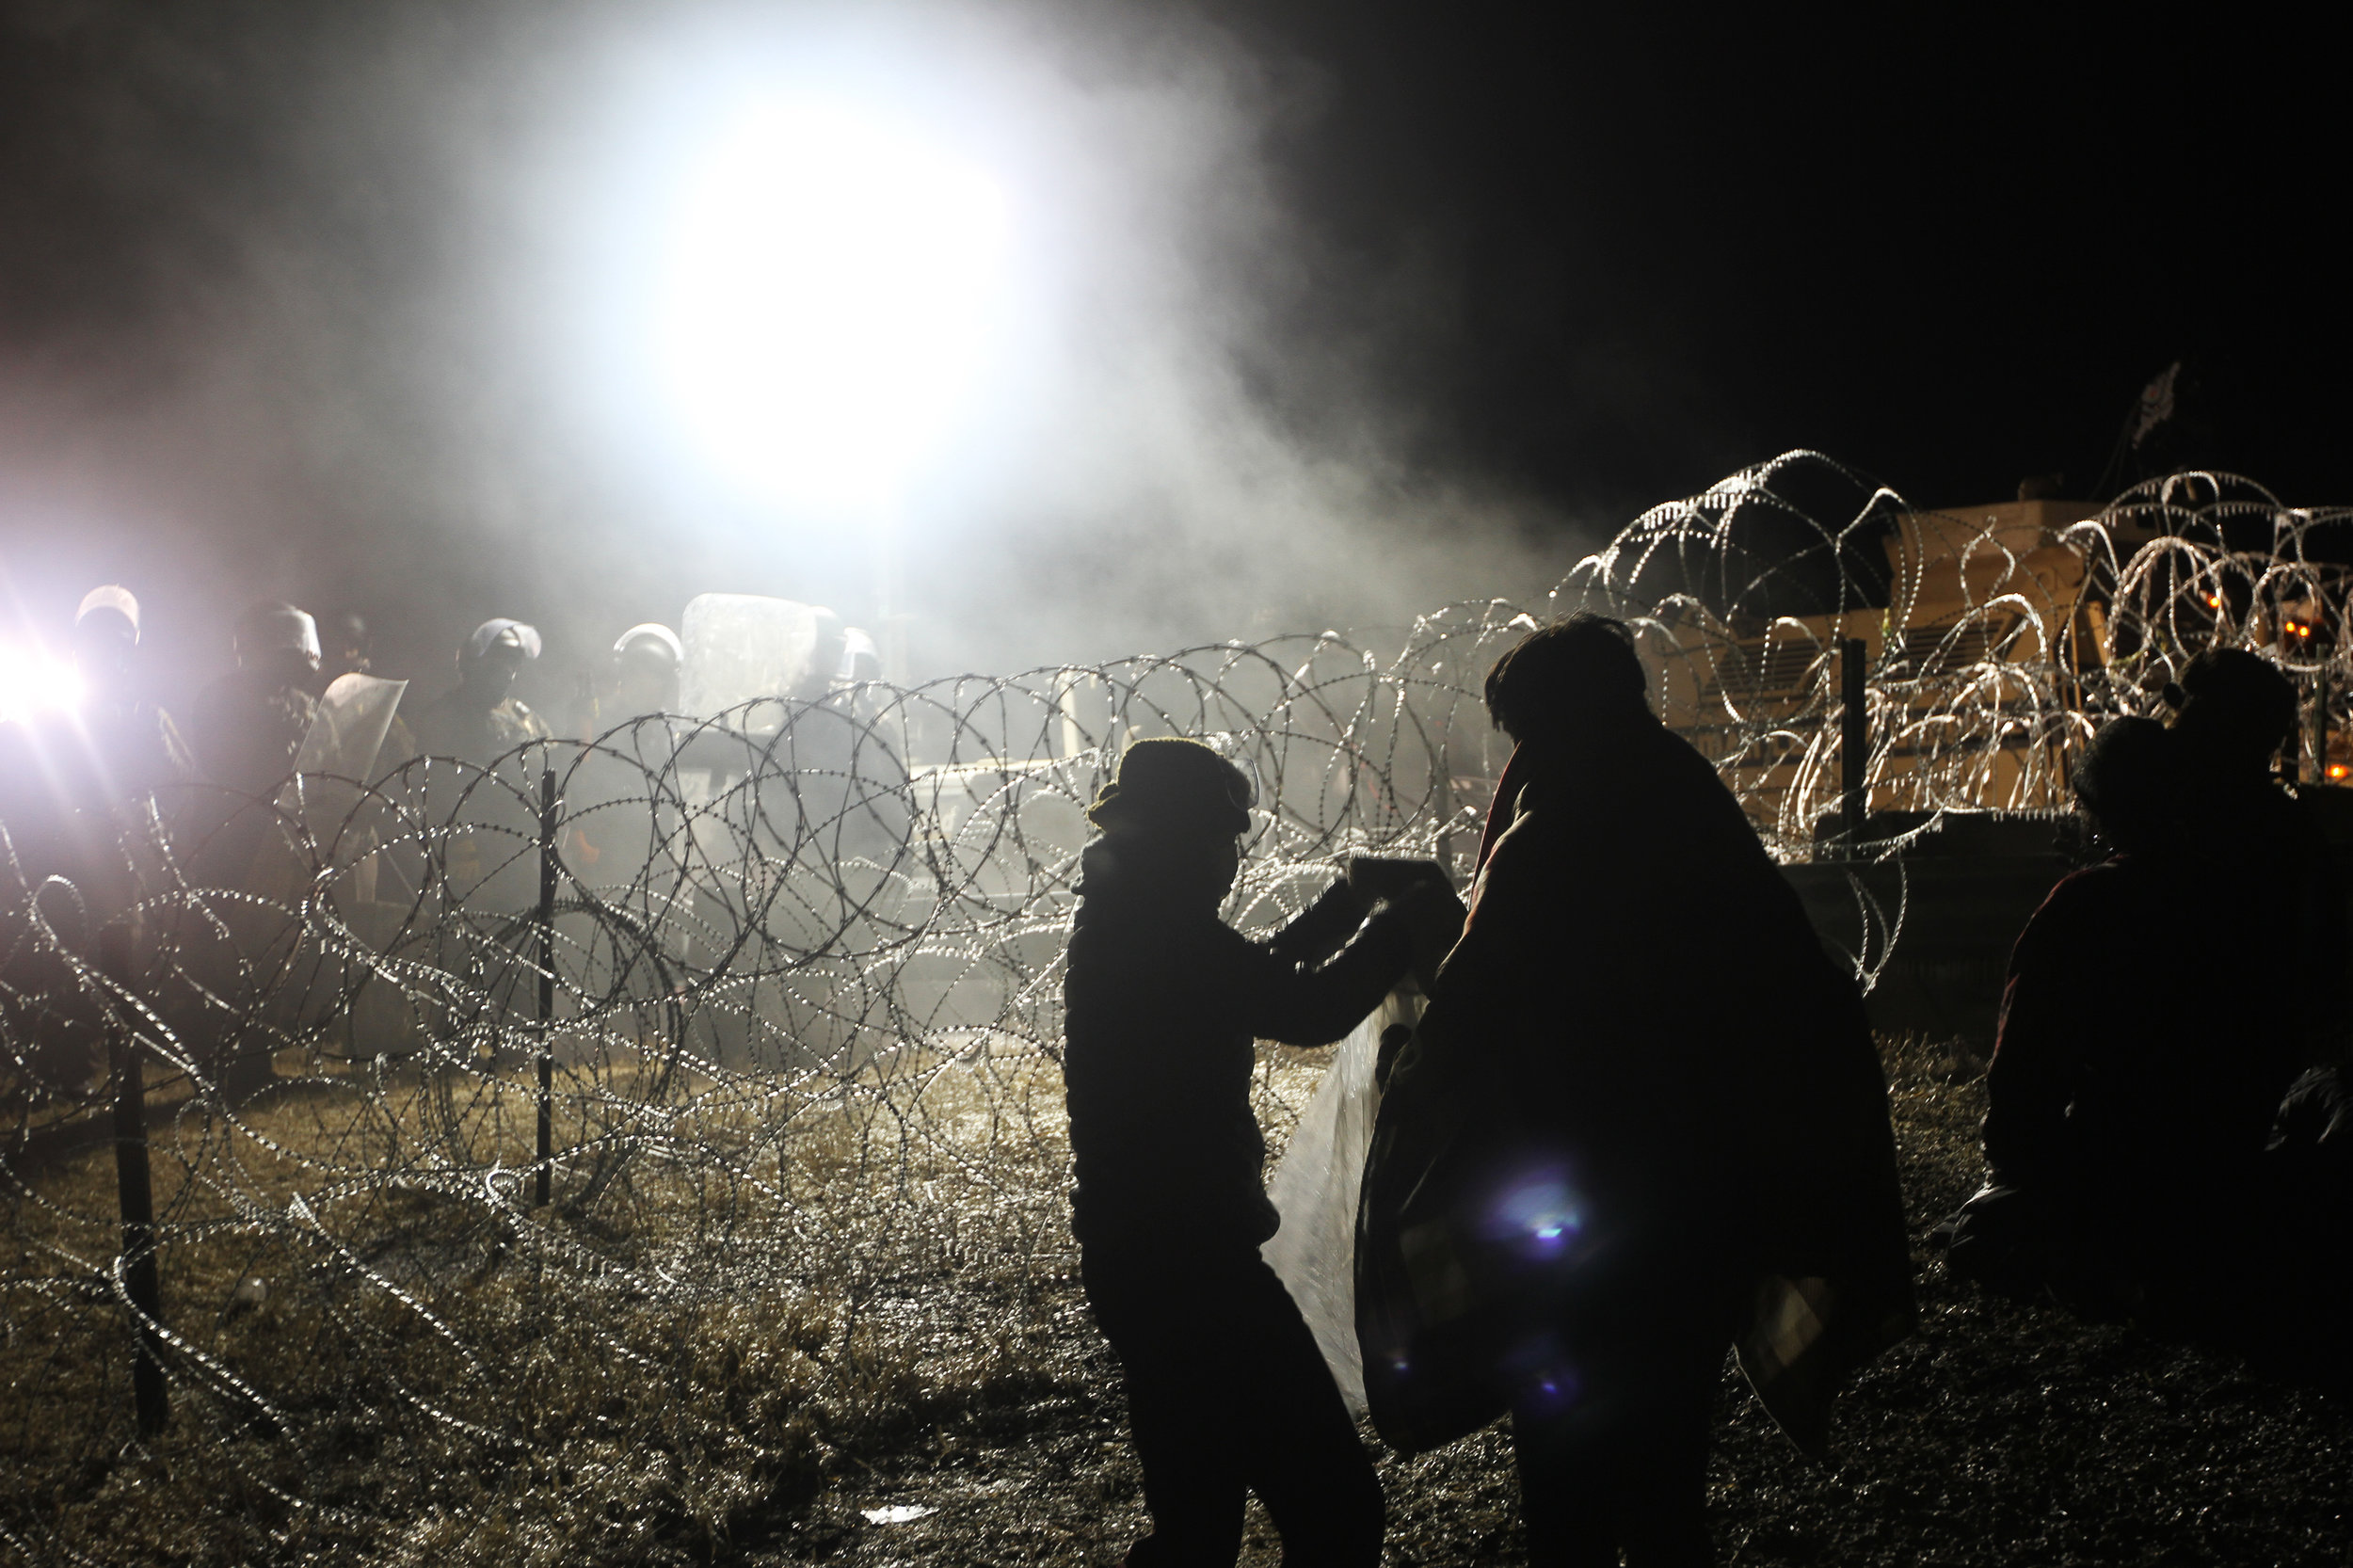 Camp medics worked tirelessly through the night to keep to protestors safe. Here they provide blankets to a man who has been sprayed with water repeatedly at close range in sub zero temperatures. Police stand behind barbed wire in riot gear.